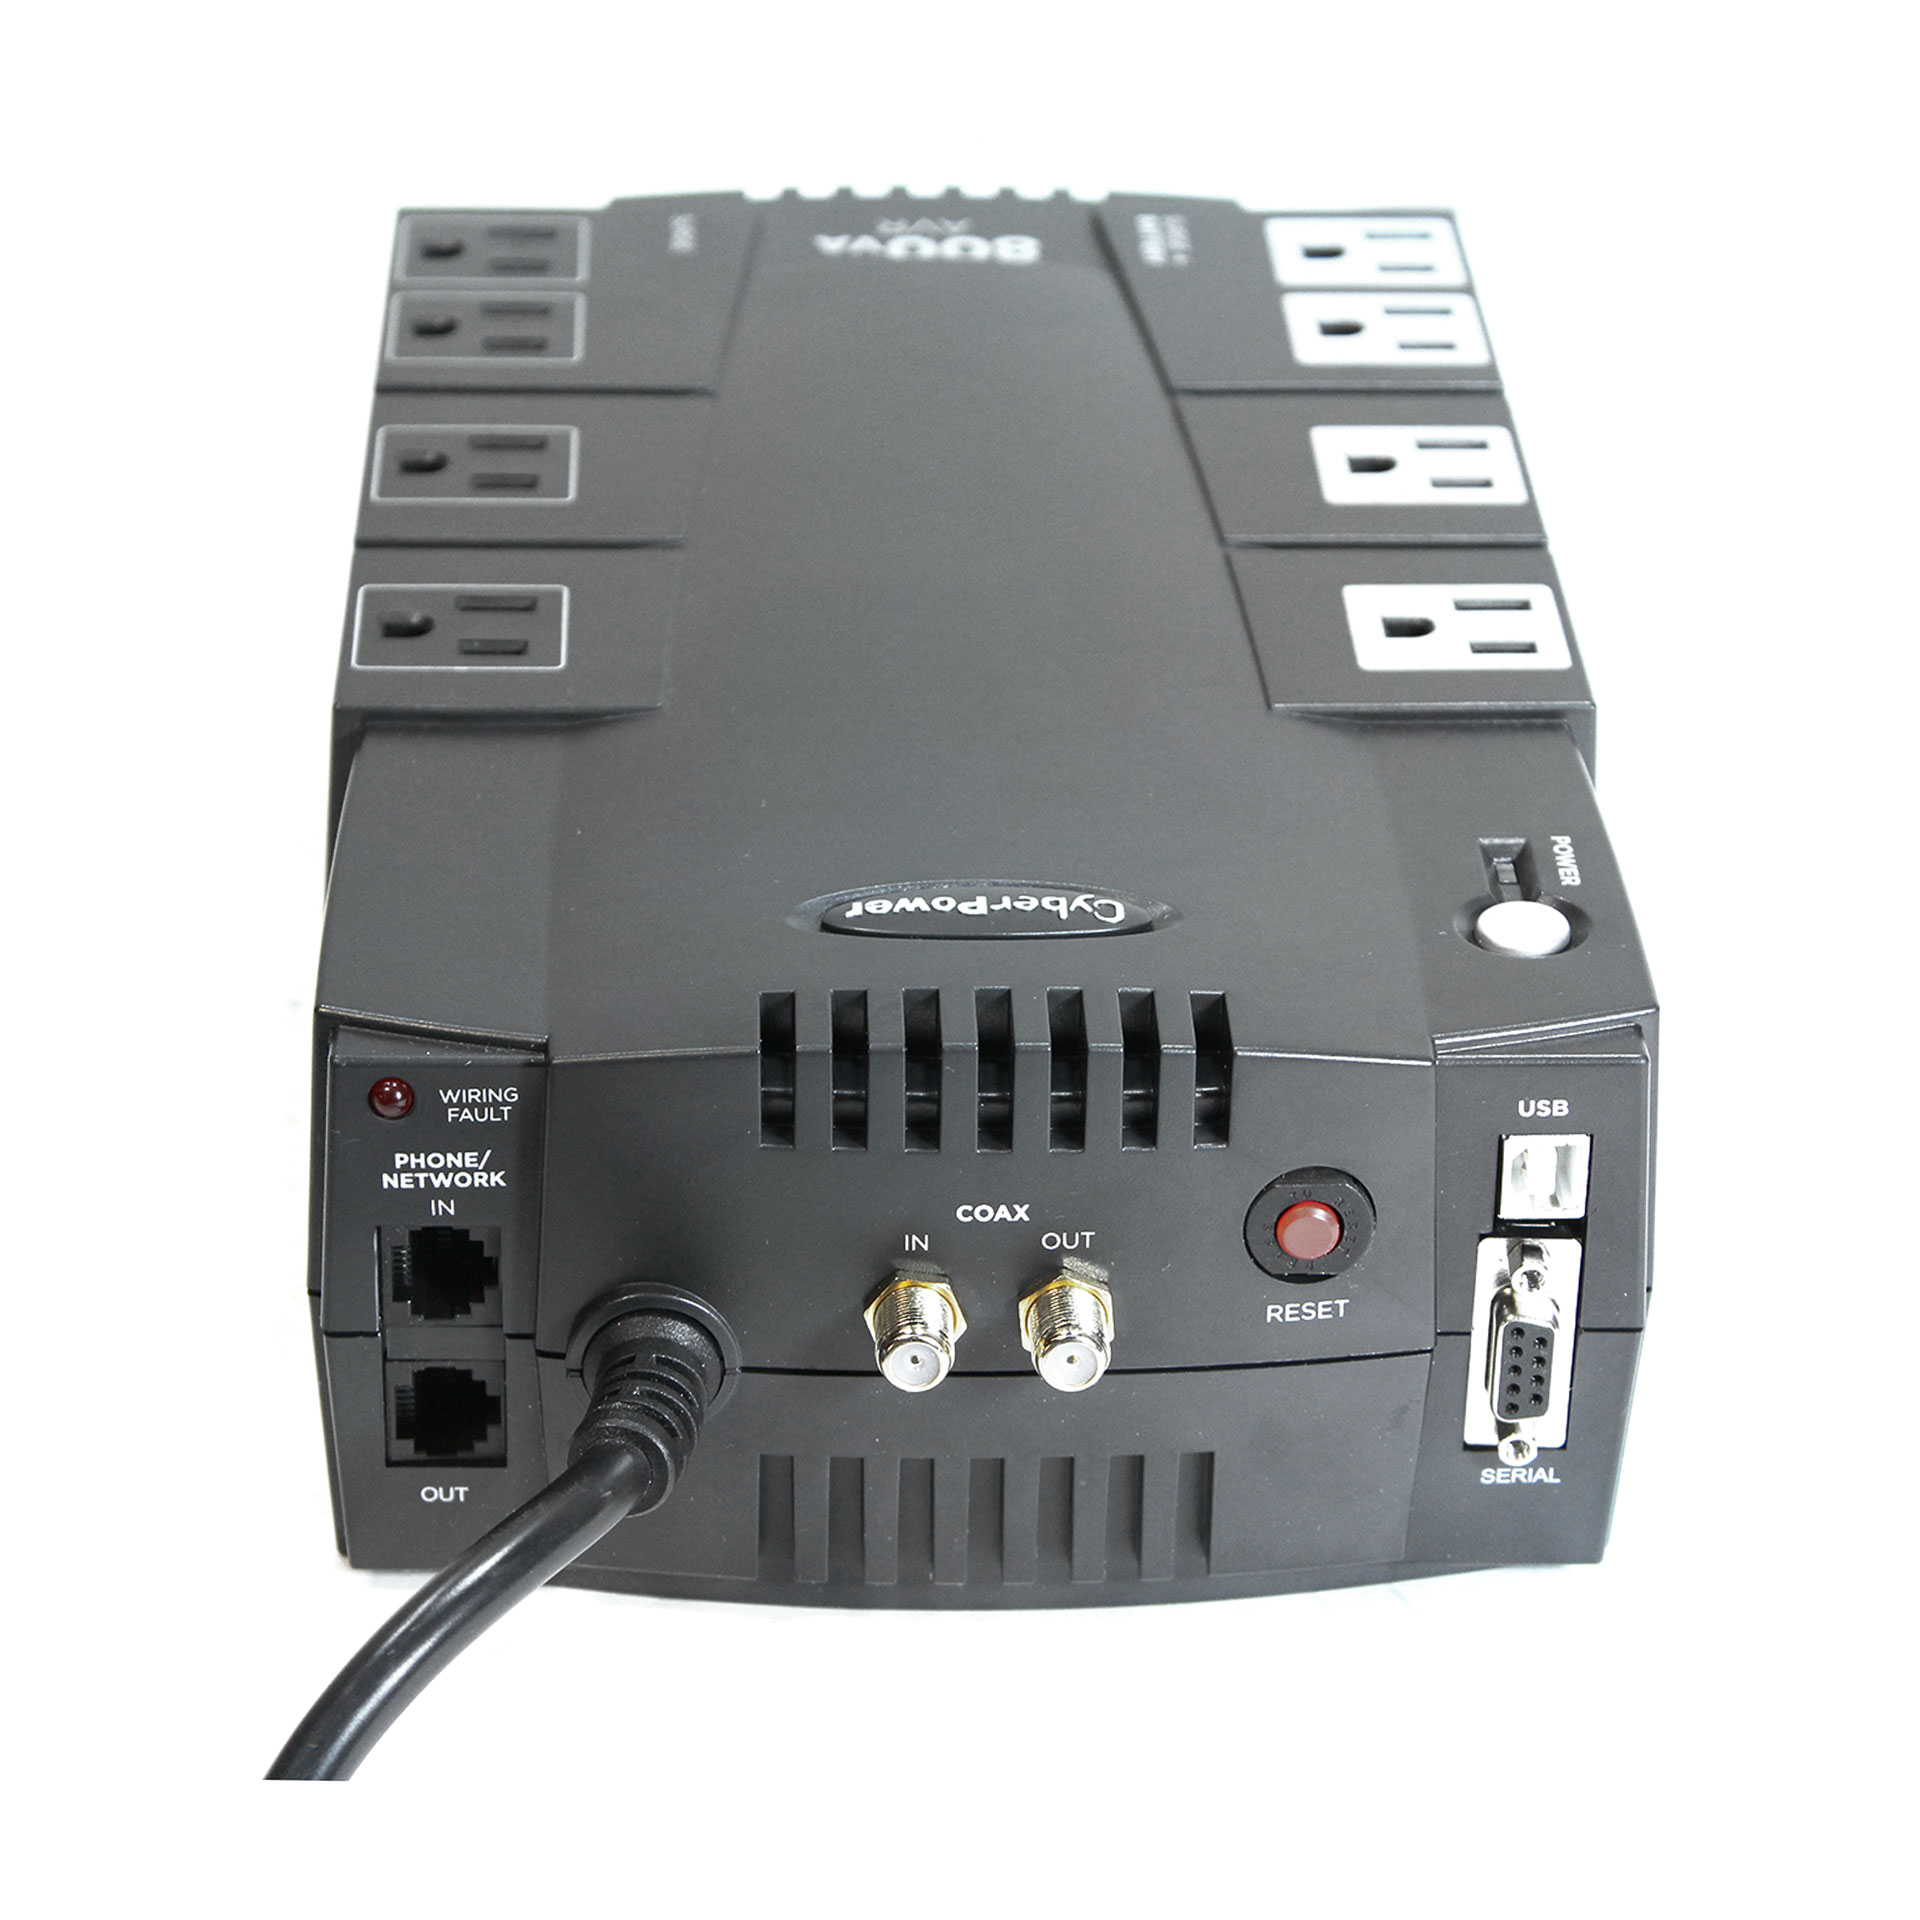 CyberPower AVR CP800AVR 800 VA 450 W 8 Outlets UPS